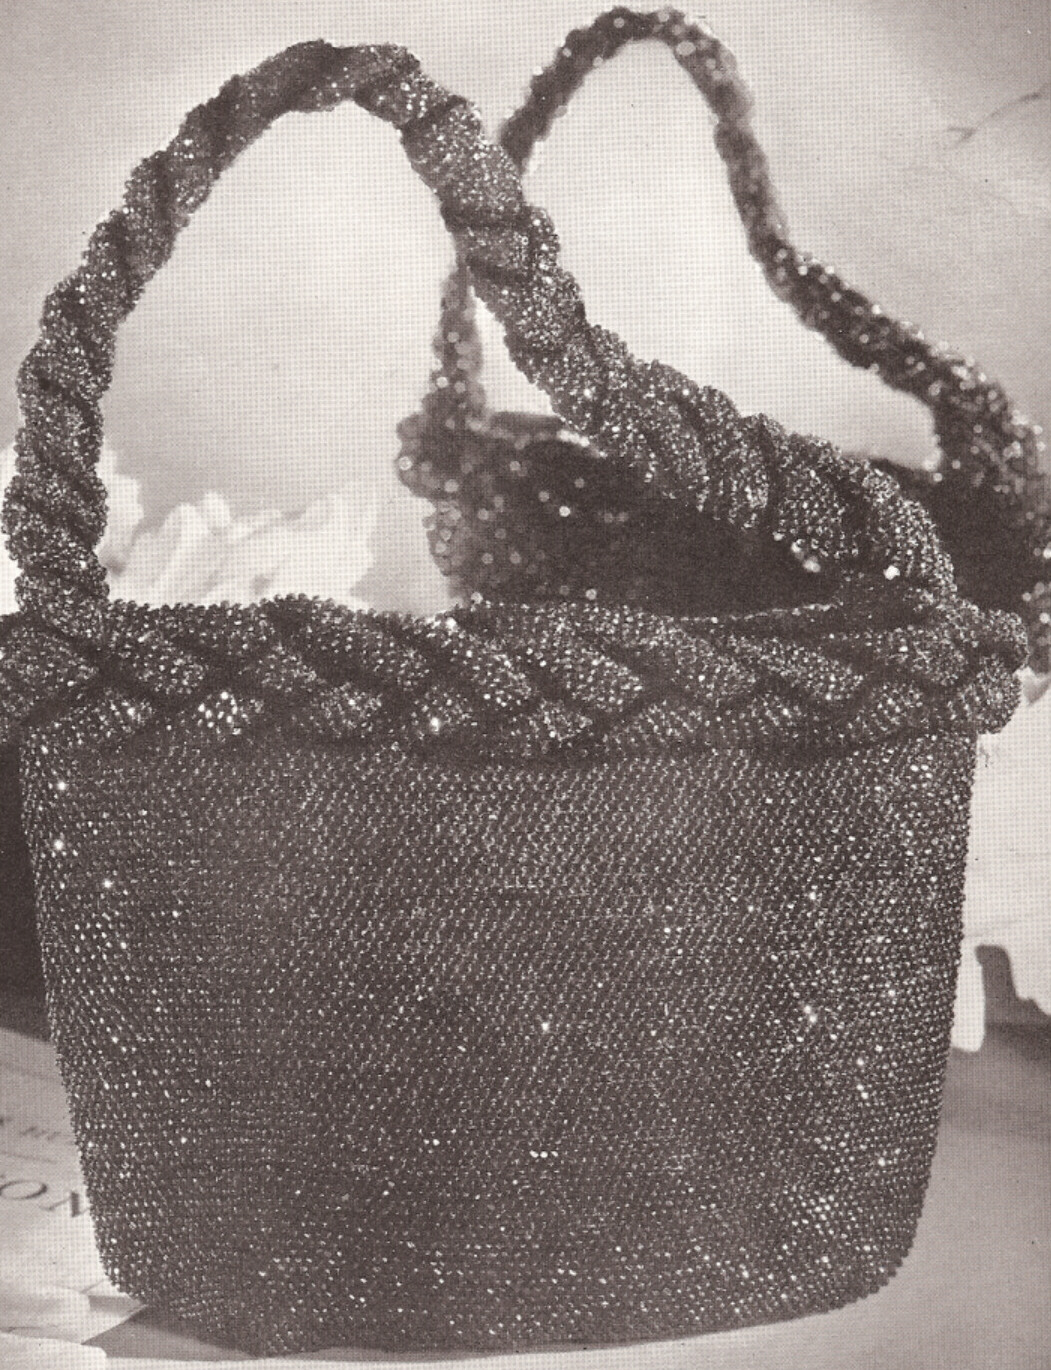 Crochet Beaded Purse Pattern : Hiawatha Beaded Bags & Accessories Vintage Crochet Pattern Book Purses ...